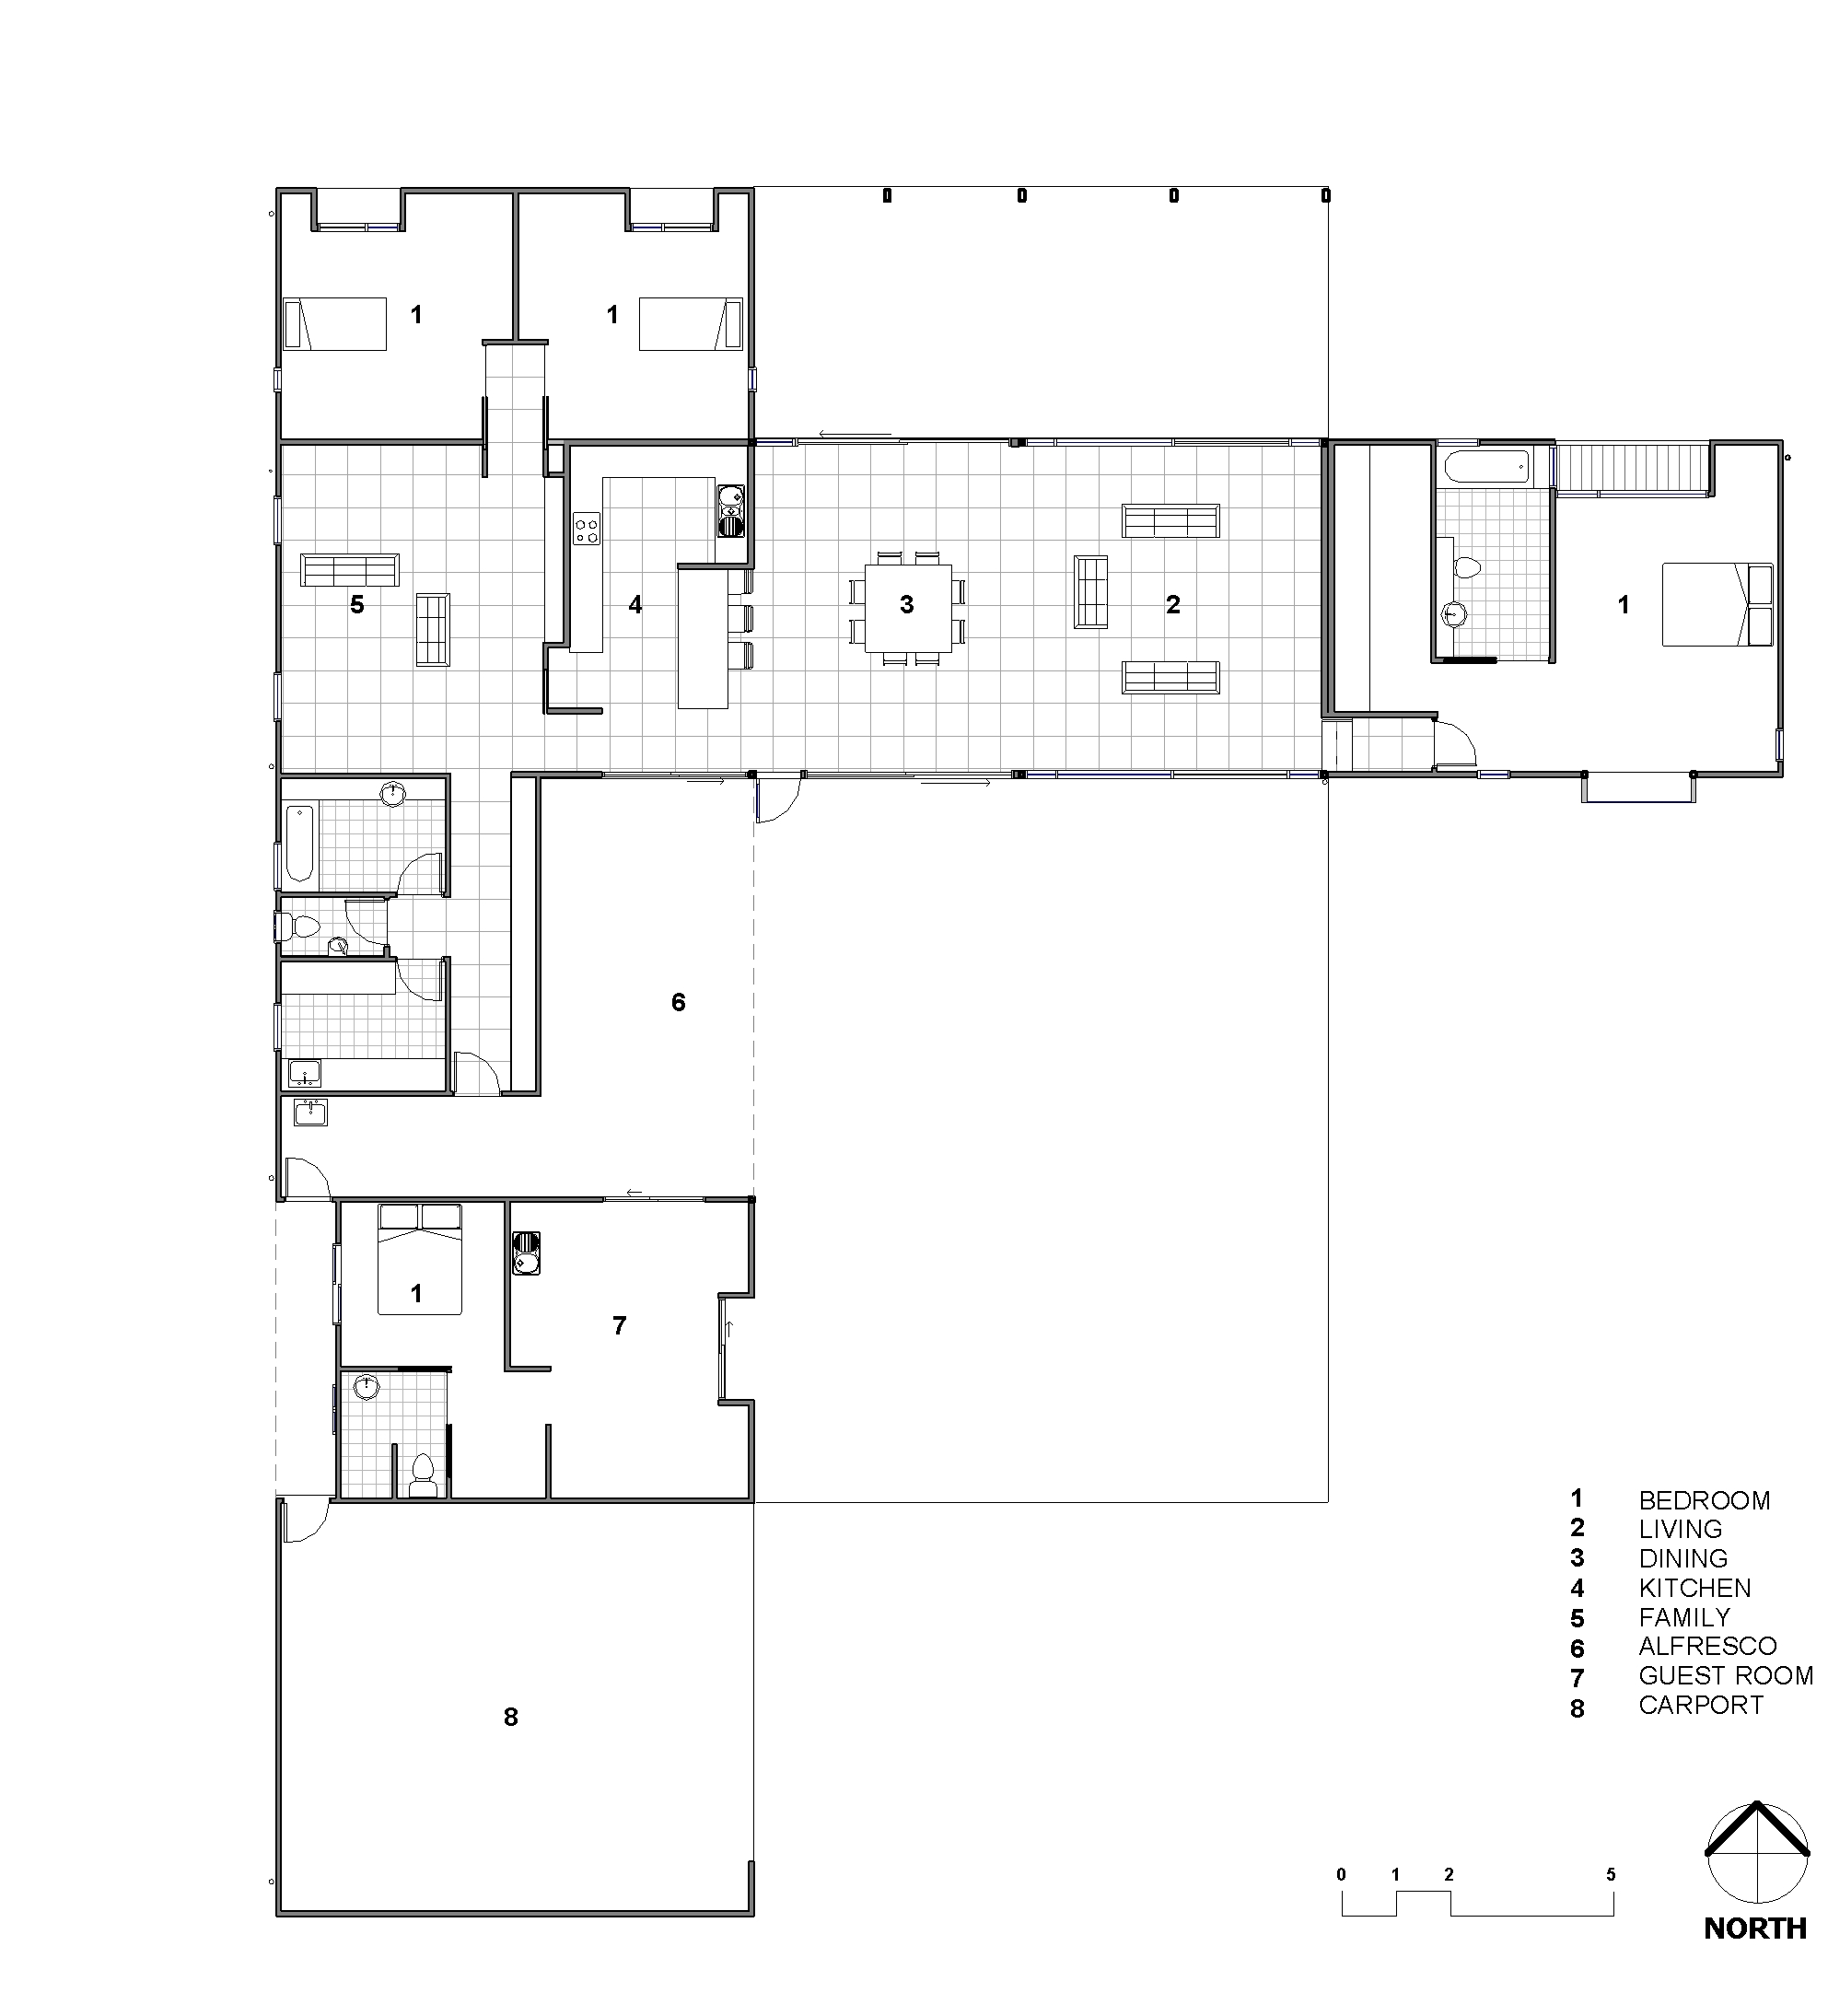 Wistow_Floor Plan